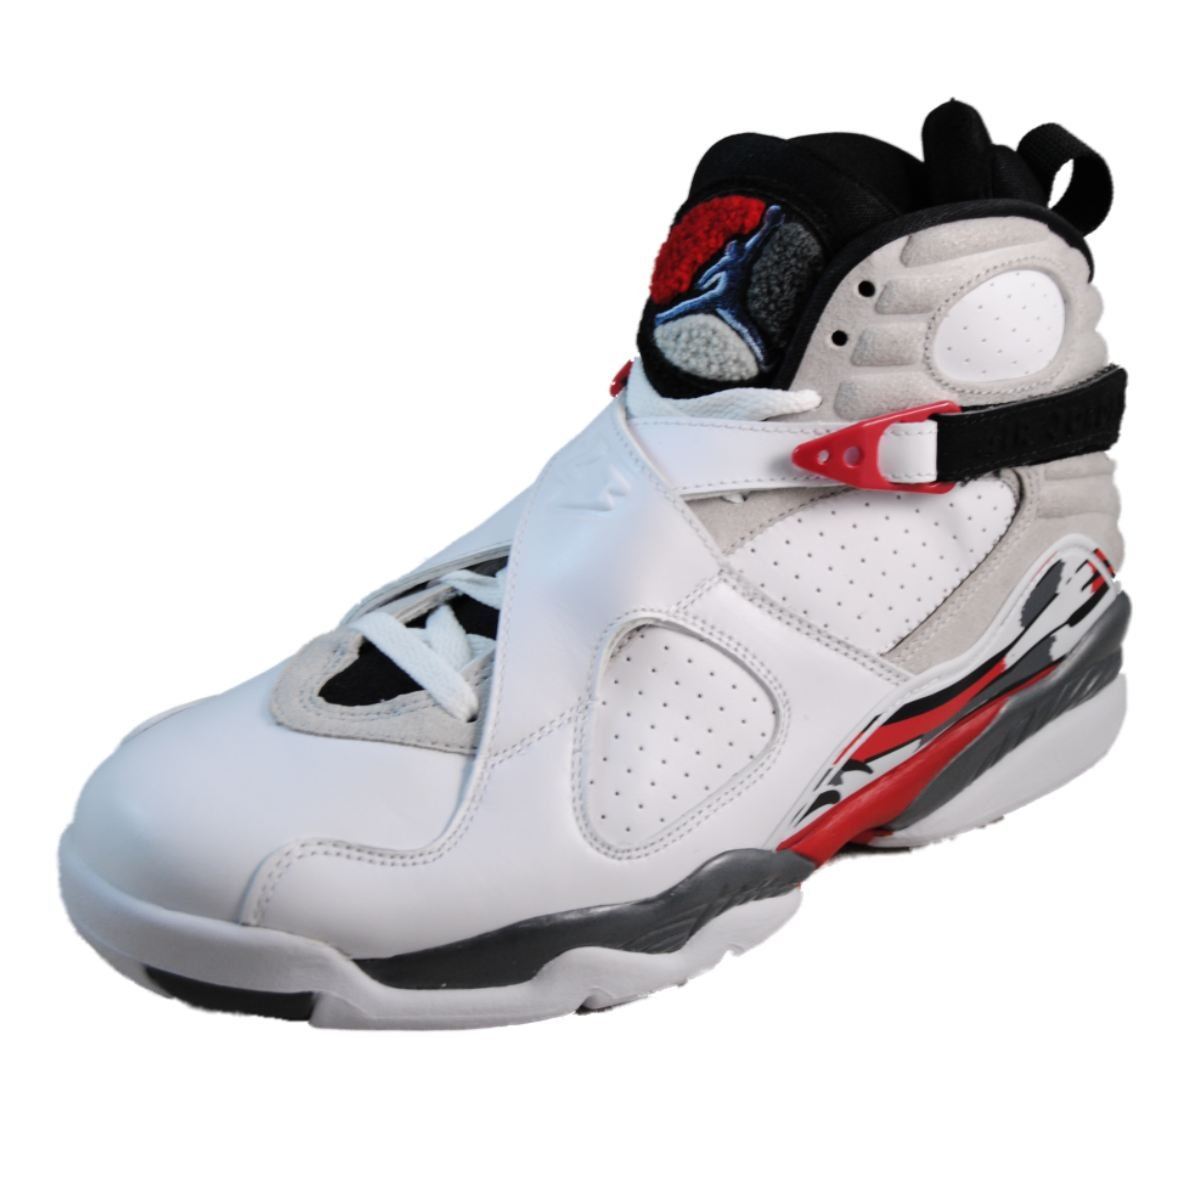 outlet store 84ce2 c899c Amazon.com   Nike Mens Air Jordan 8 Retro Bugs Bunny Leather Basketball  Shoes   Basketball